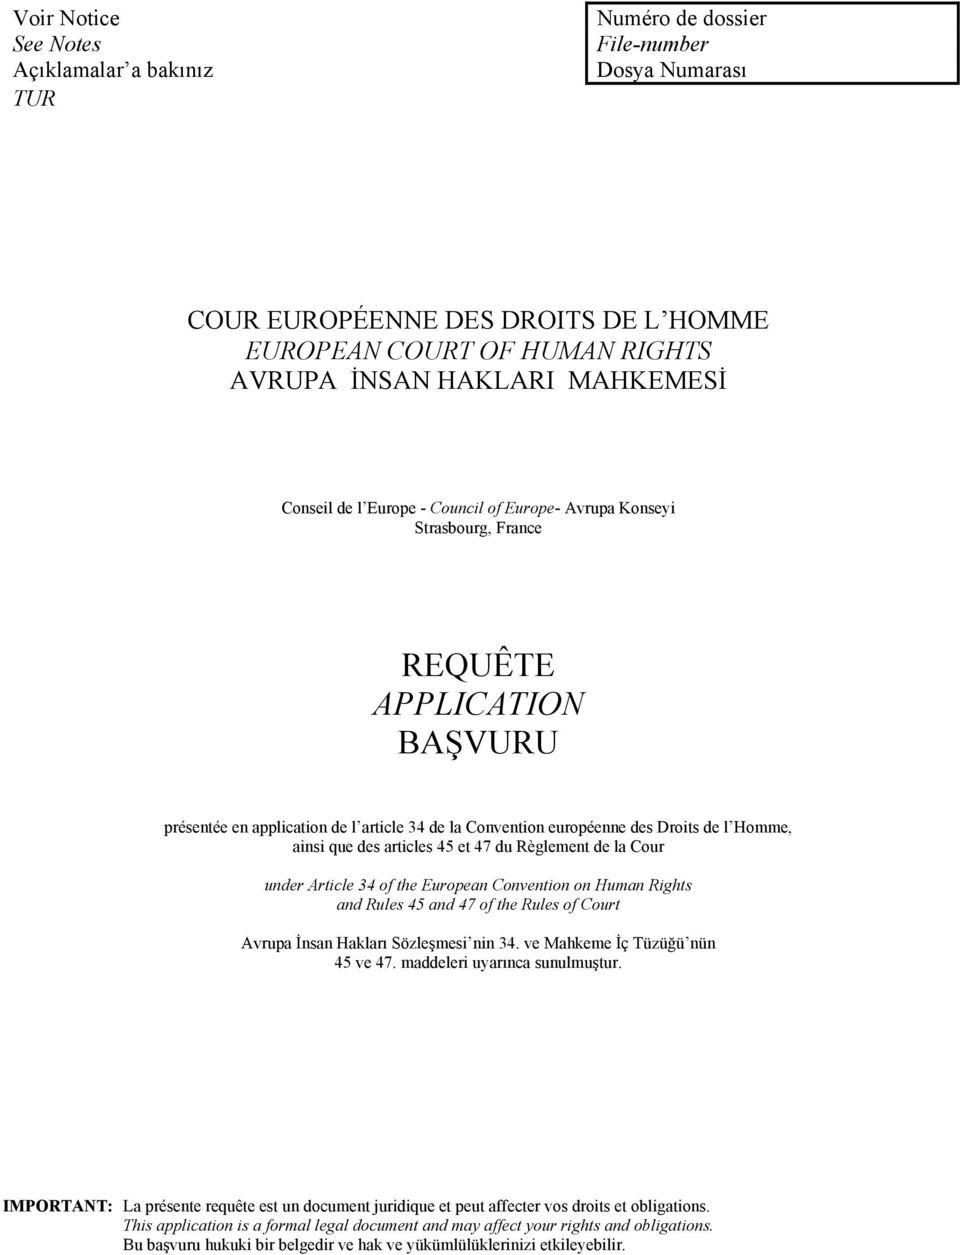 ainsi que des articles 45 et 47 du Règlement de la Cour under Article 34 of the European Convention on Human Rights and Rules 45 and 47 of the Rules of Court Avrupa İnsan Hakları Sözleşmesi nin 34.